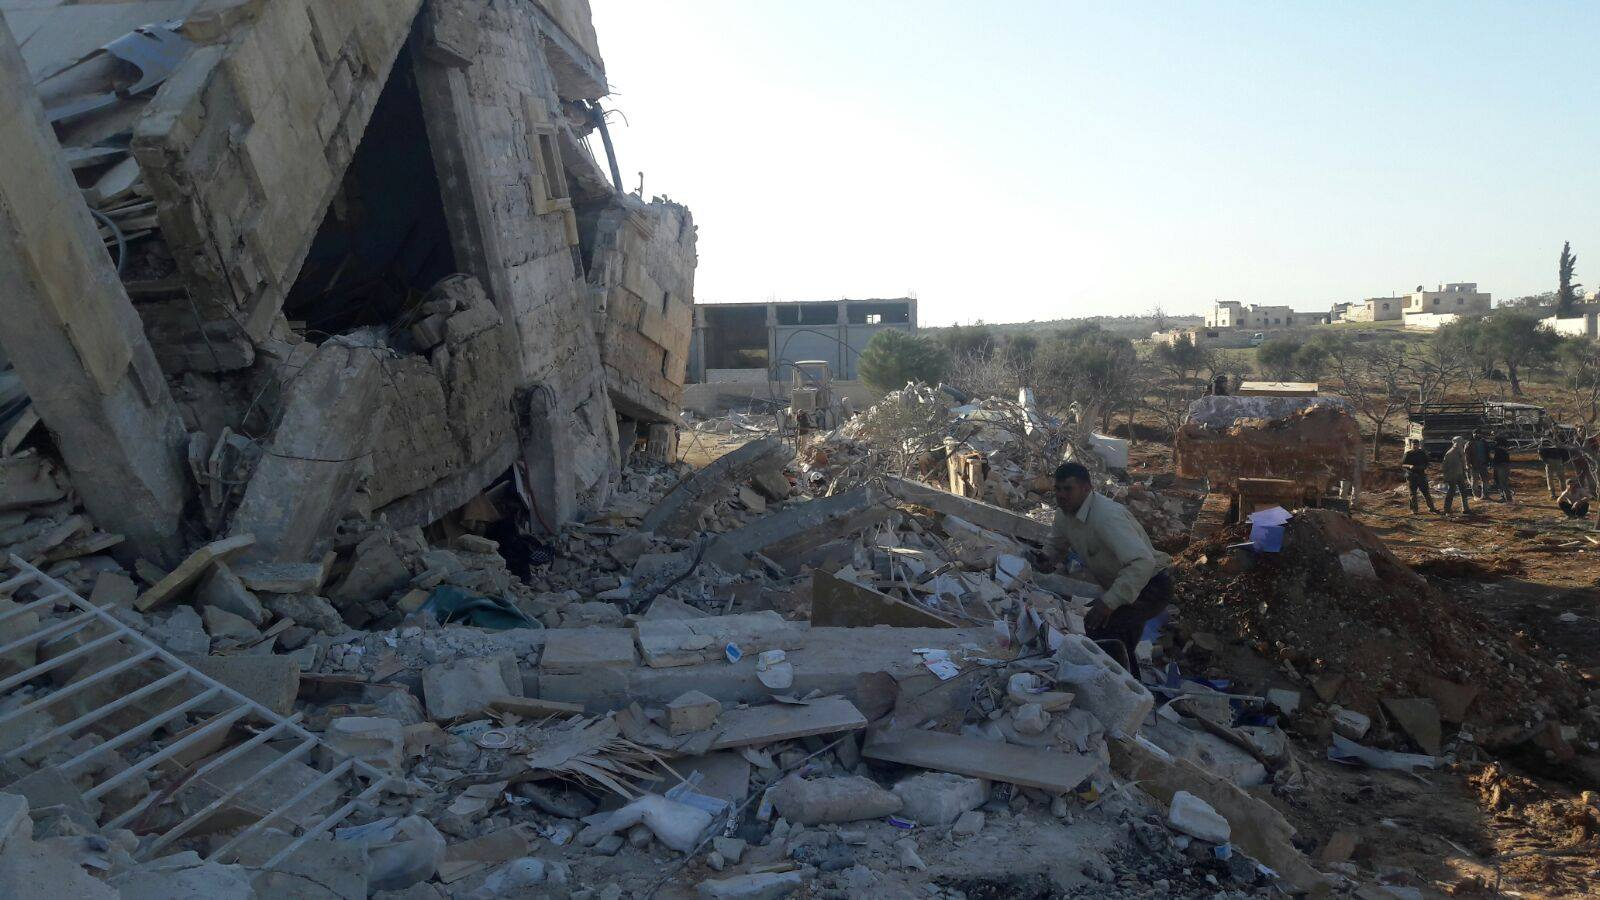 A destroyed Médecins Sans Frontières hospital in Idlib, Syria, one of three medical facilities attacked on Feb. 15, 2016 Credit: Dr. Abdulaziz